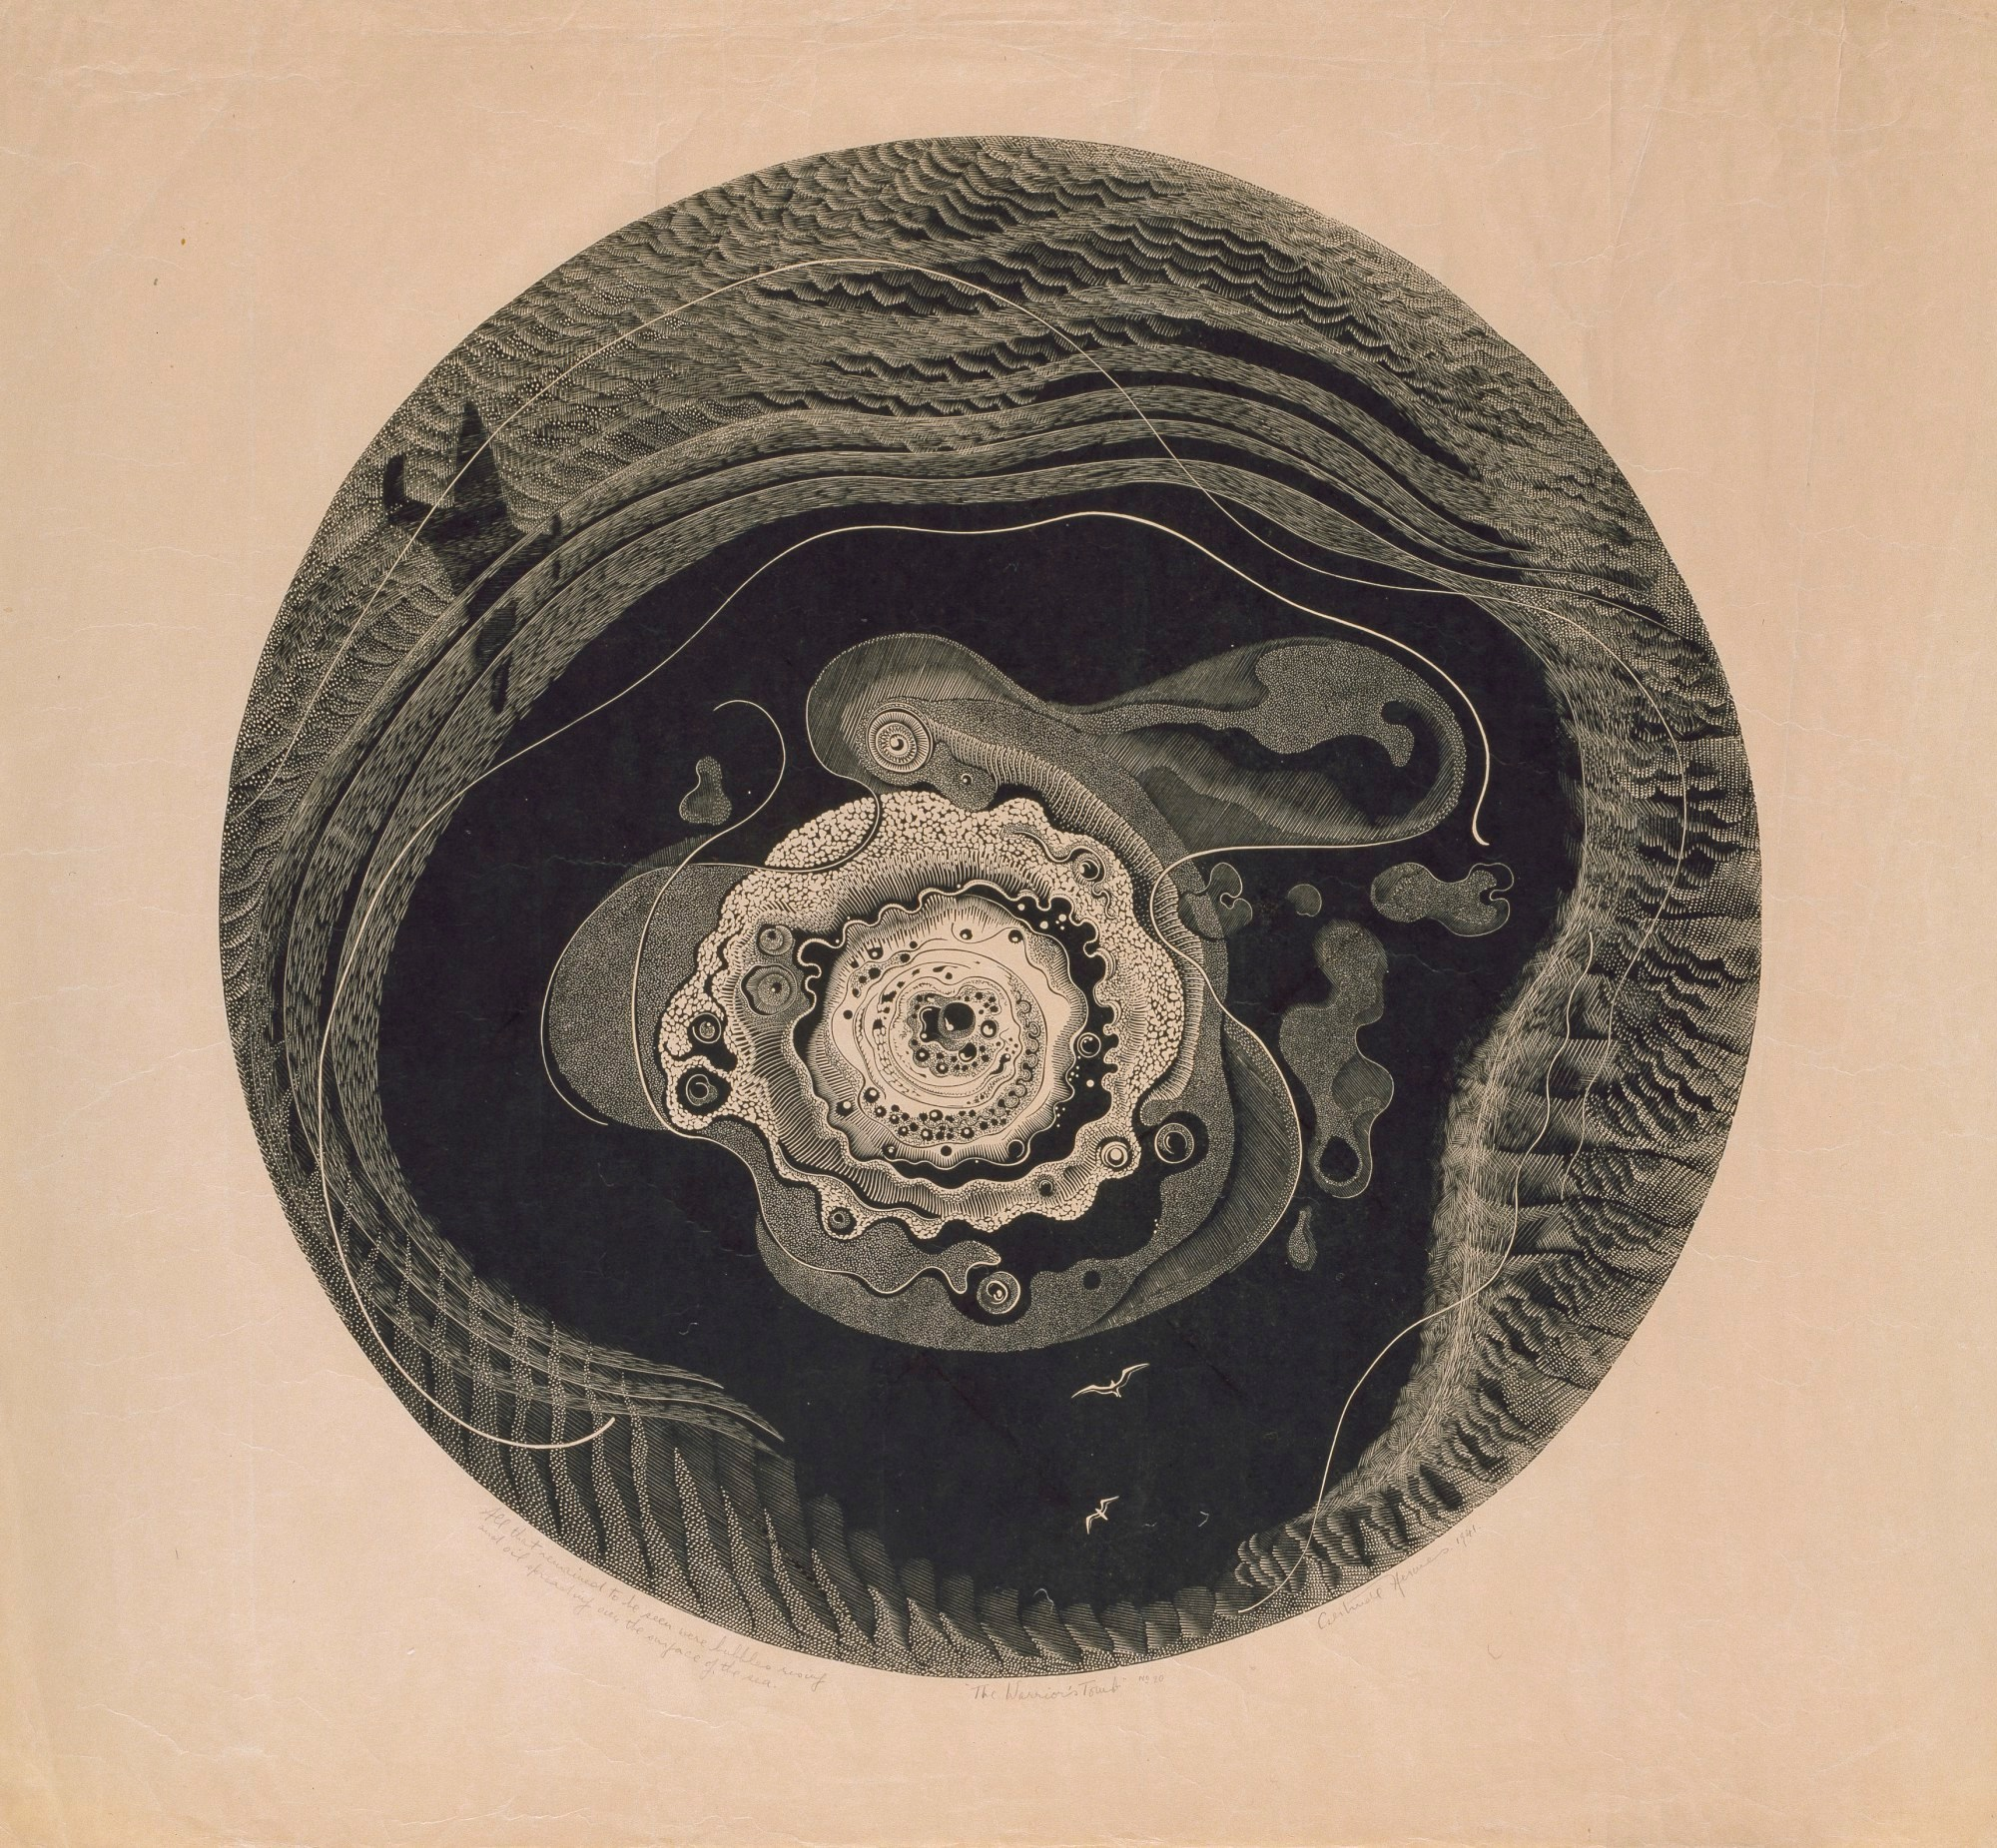 A wood engraving called The Warrior's Tomb' by Gertrude Hermes. Created in 1941.